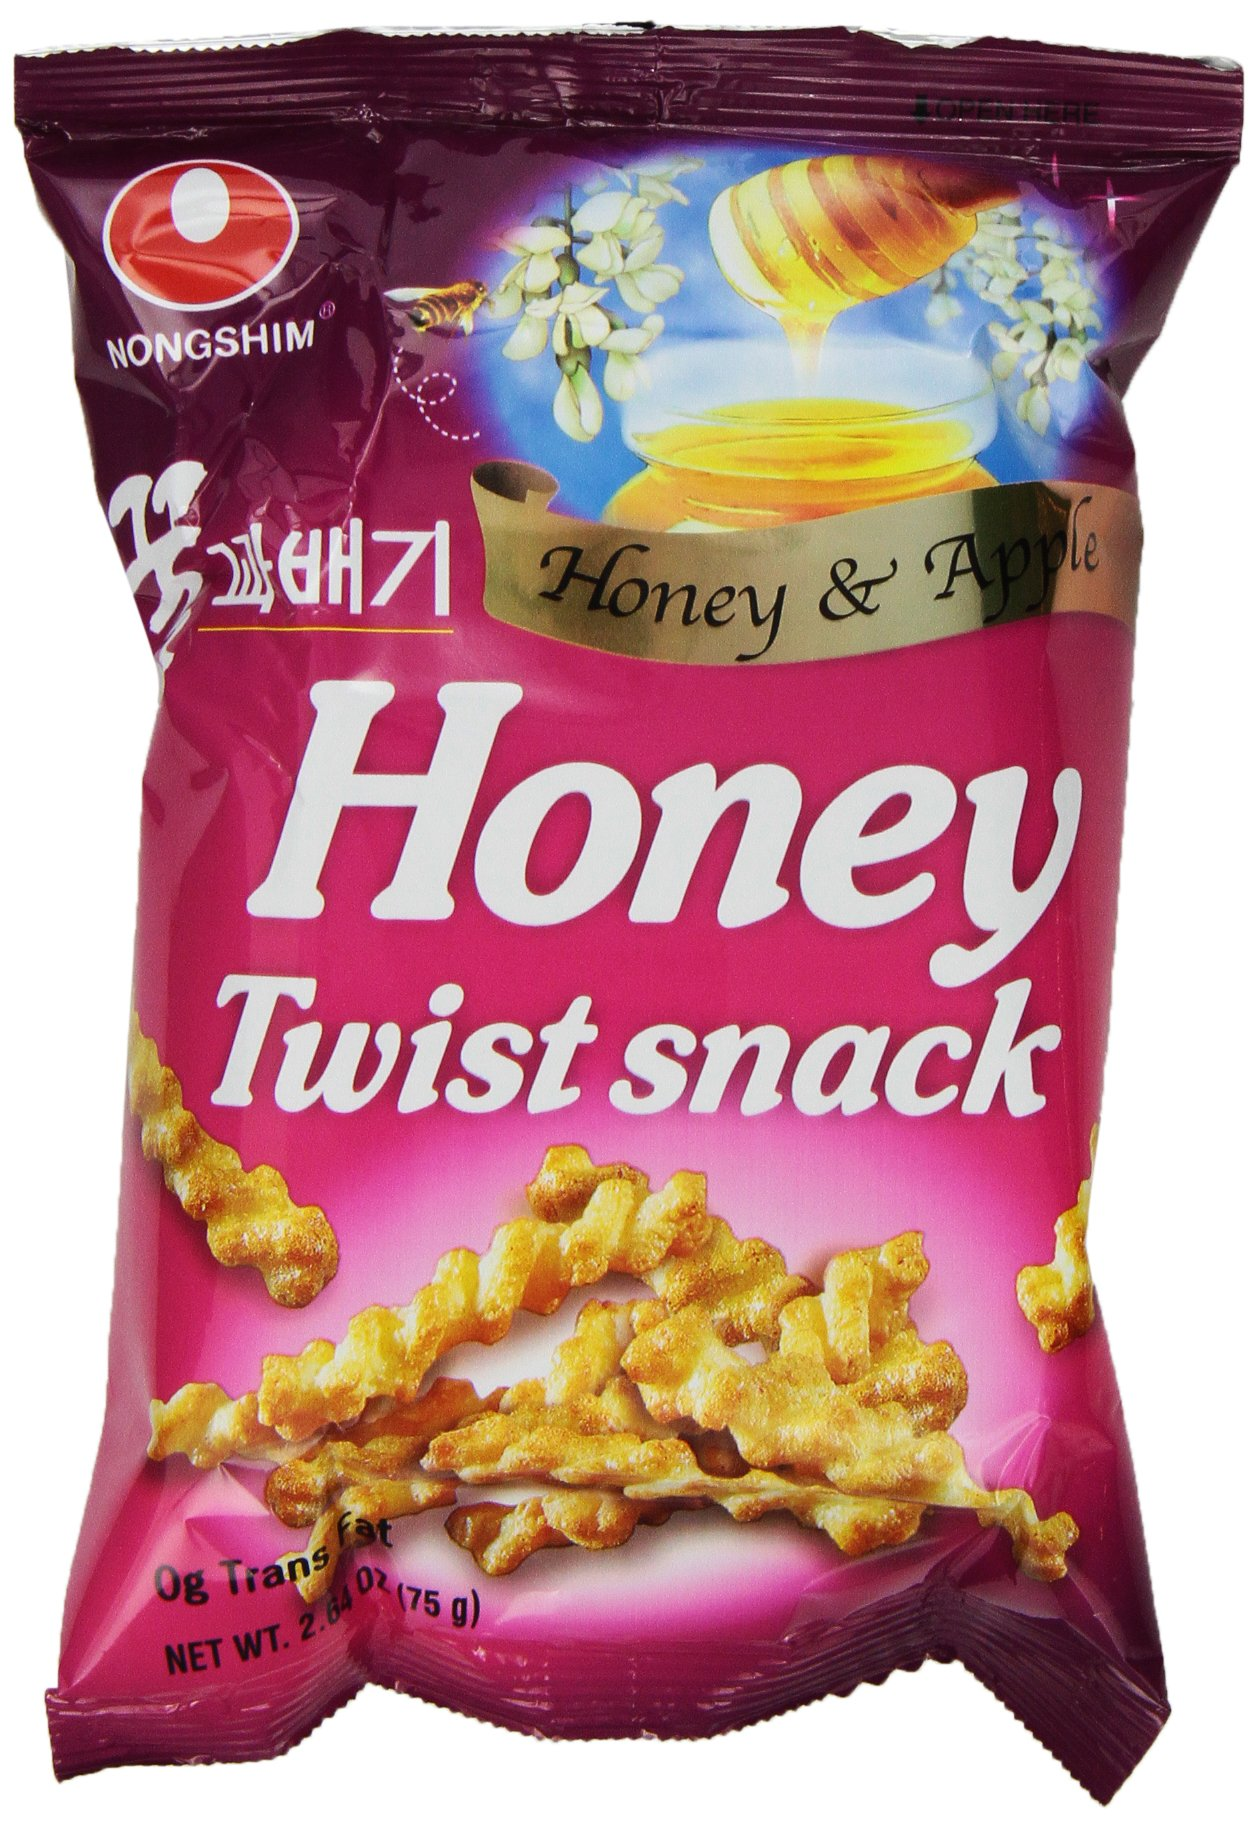 NongShim Honey Twist Snack, 2.64 Ounce Packages (Pack of 20) by Nongshim